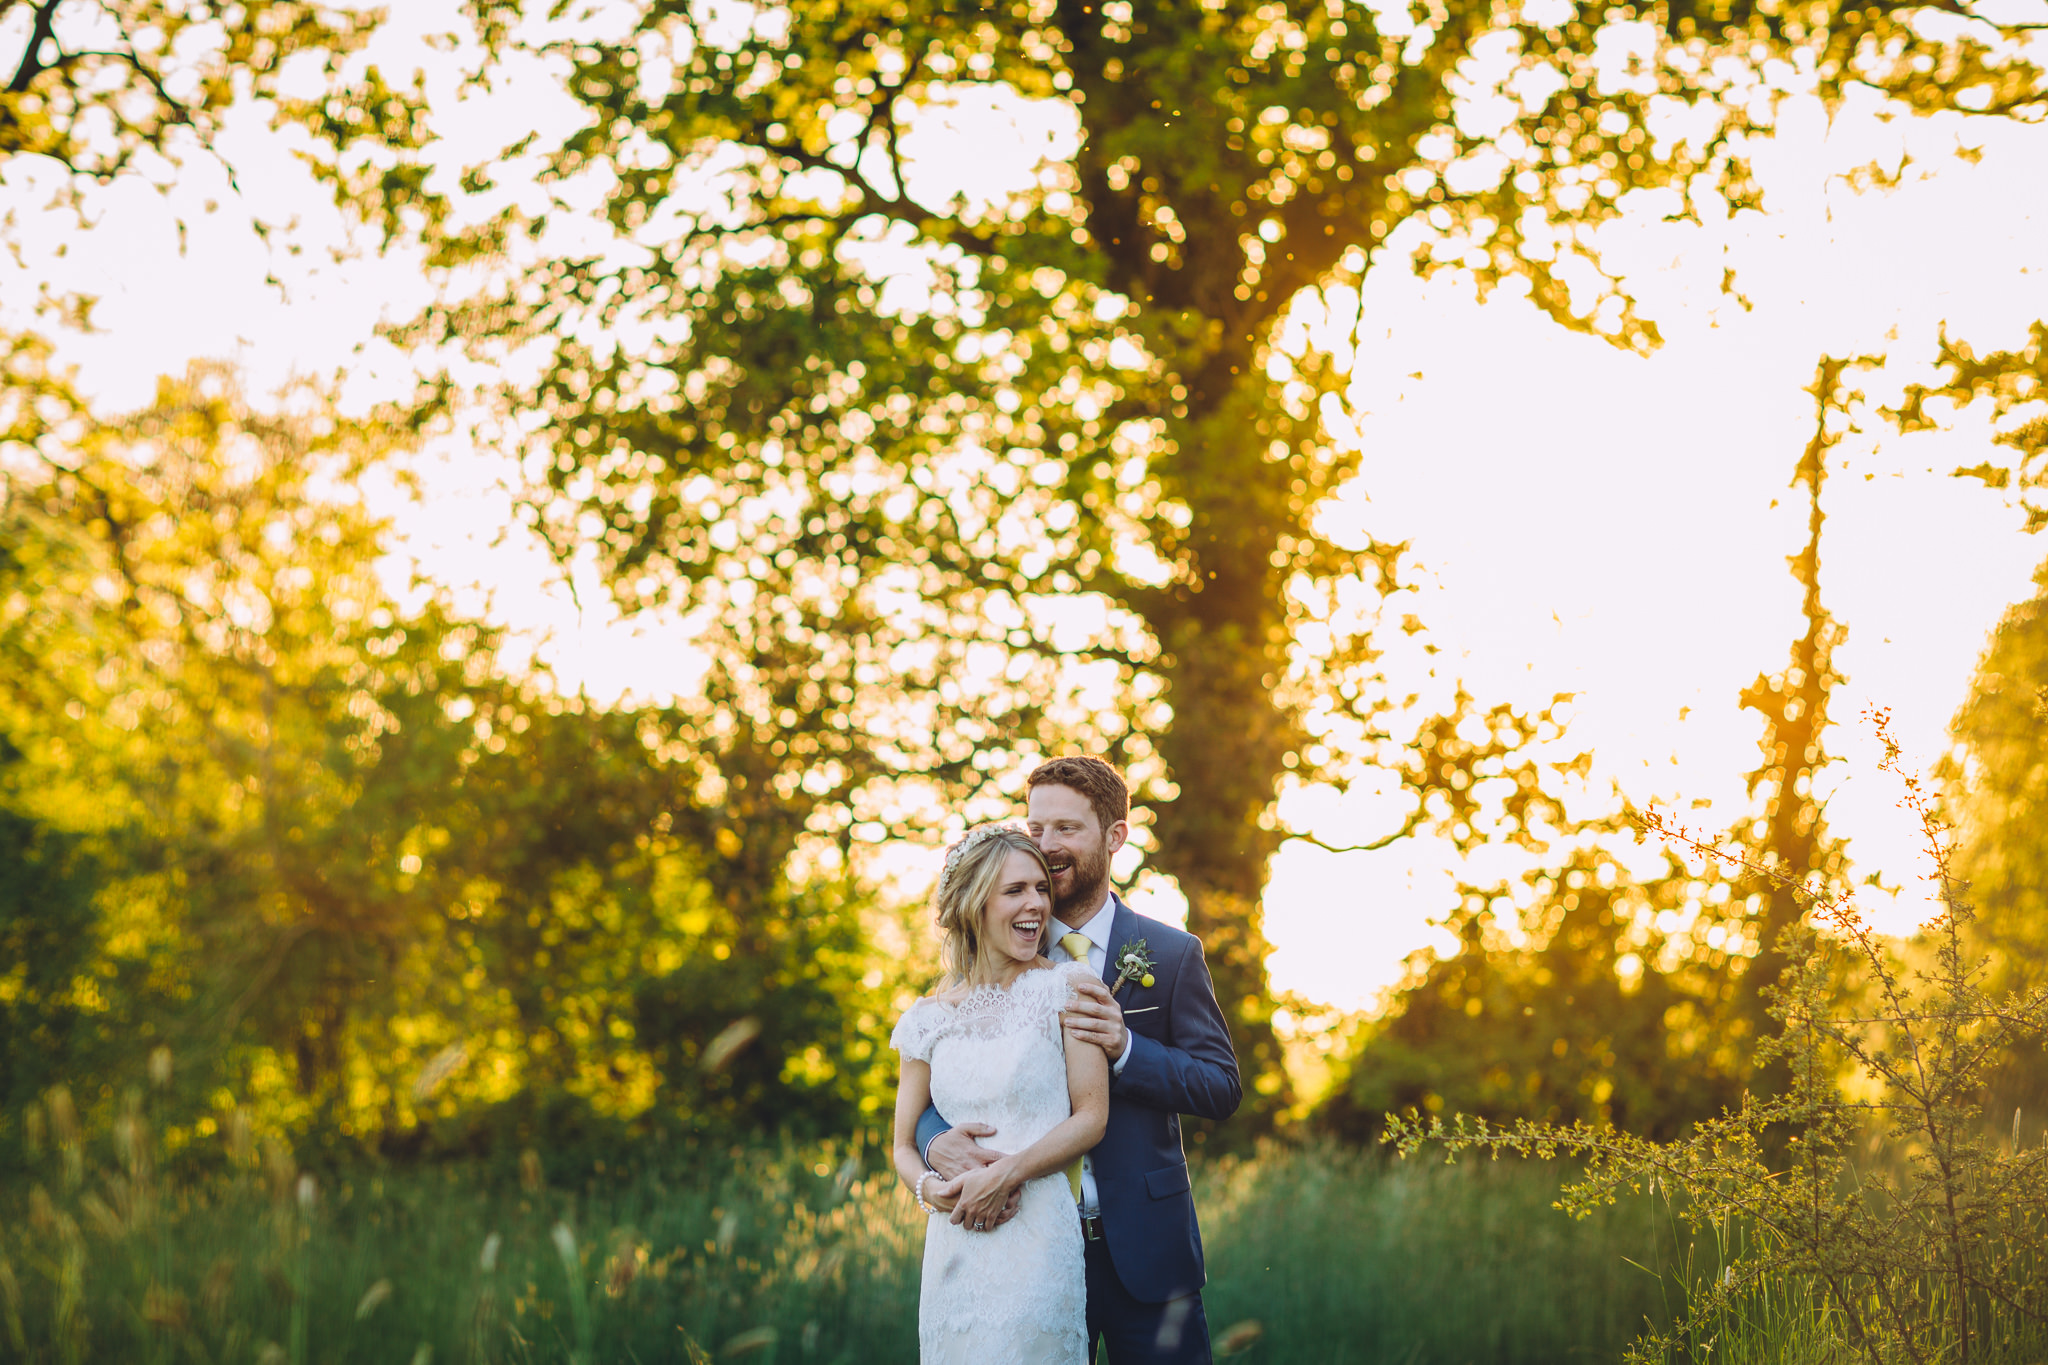 Owen-House-Barn-Wedding-Photographer-Cheshire-90076